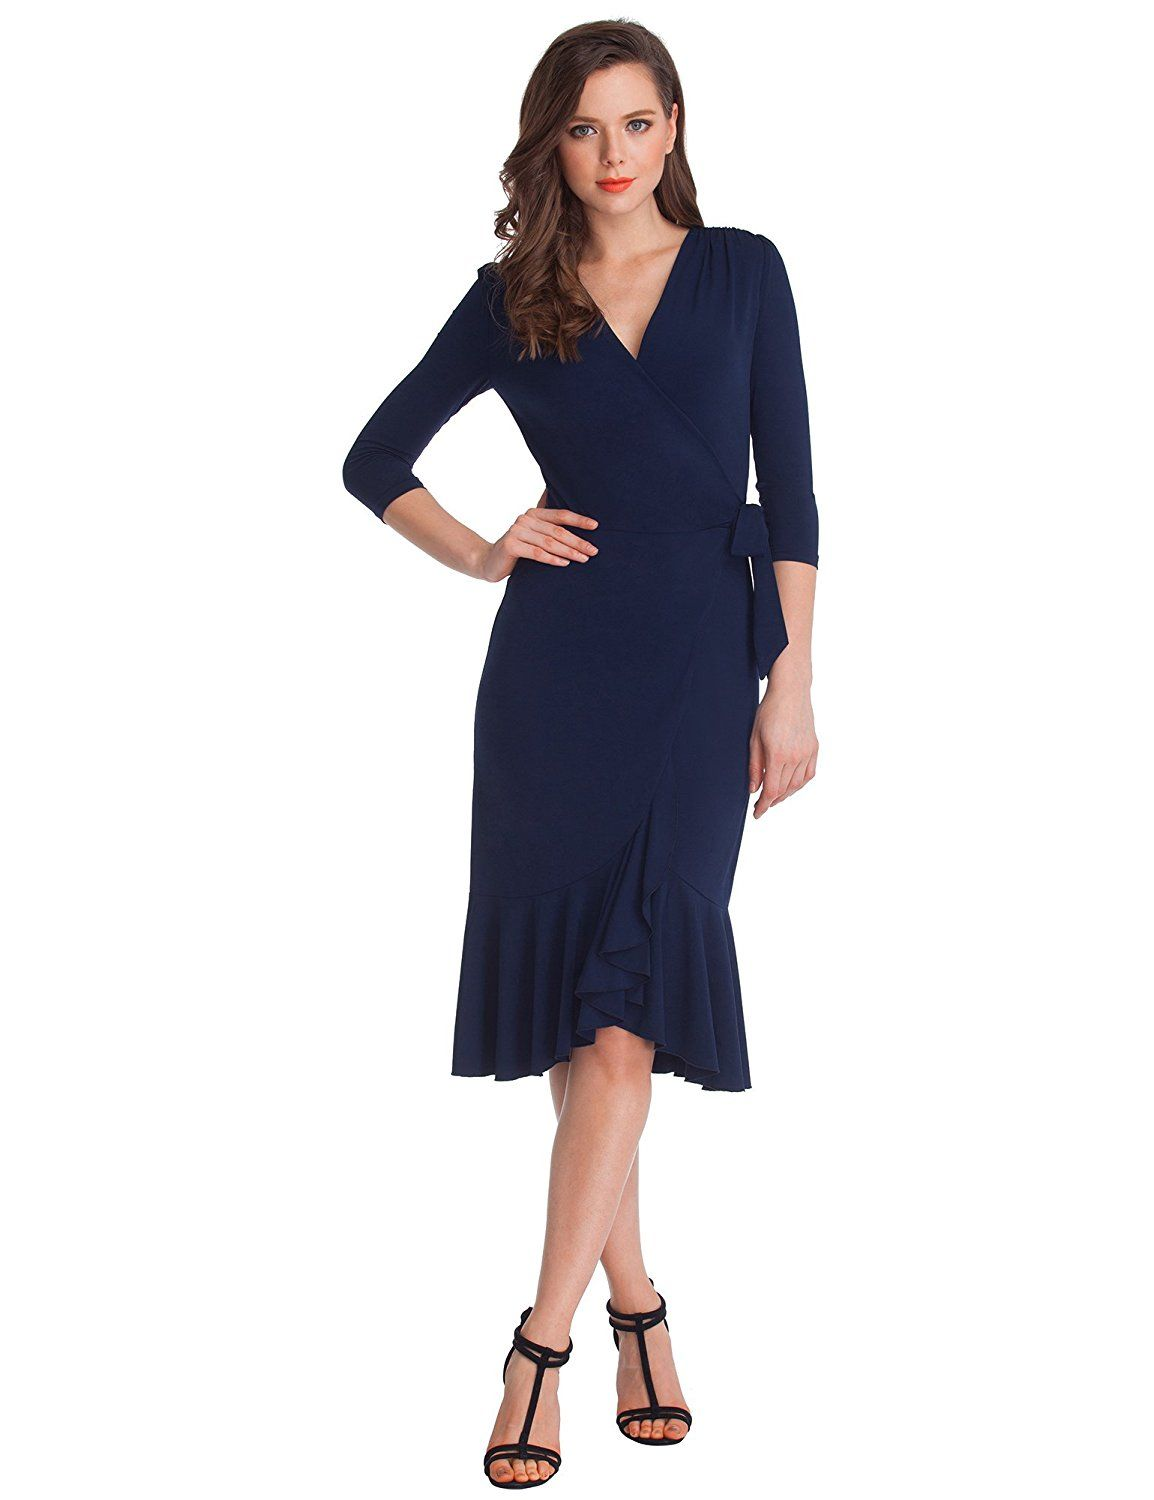 Grapent Women's Navy 34 Sleeve Ruffle Surplice Neckline